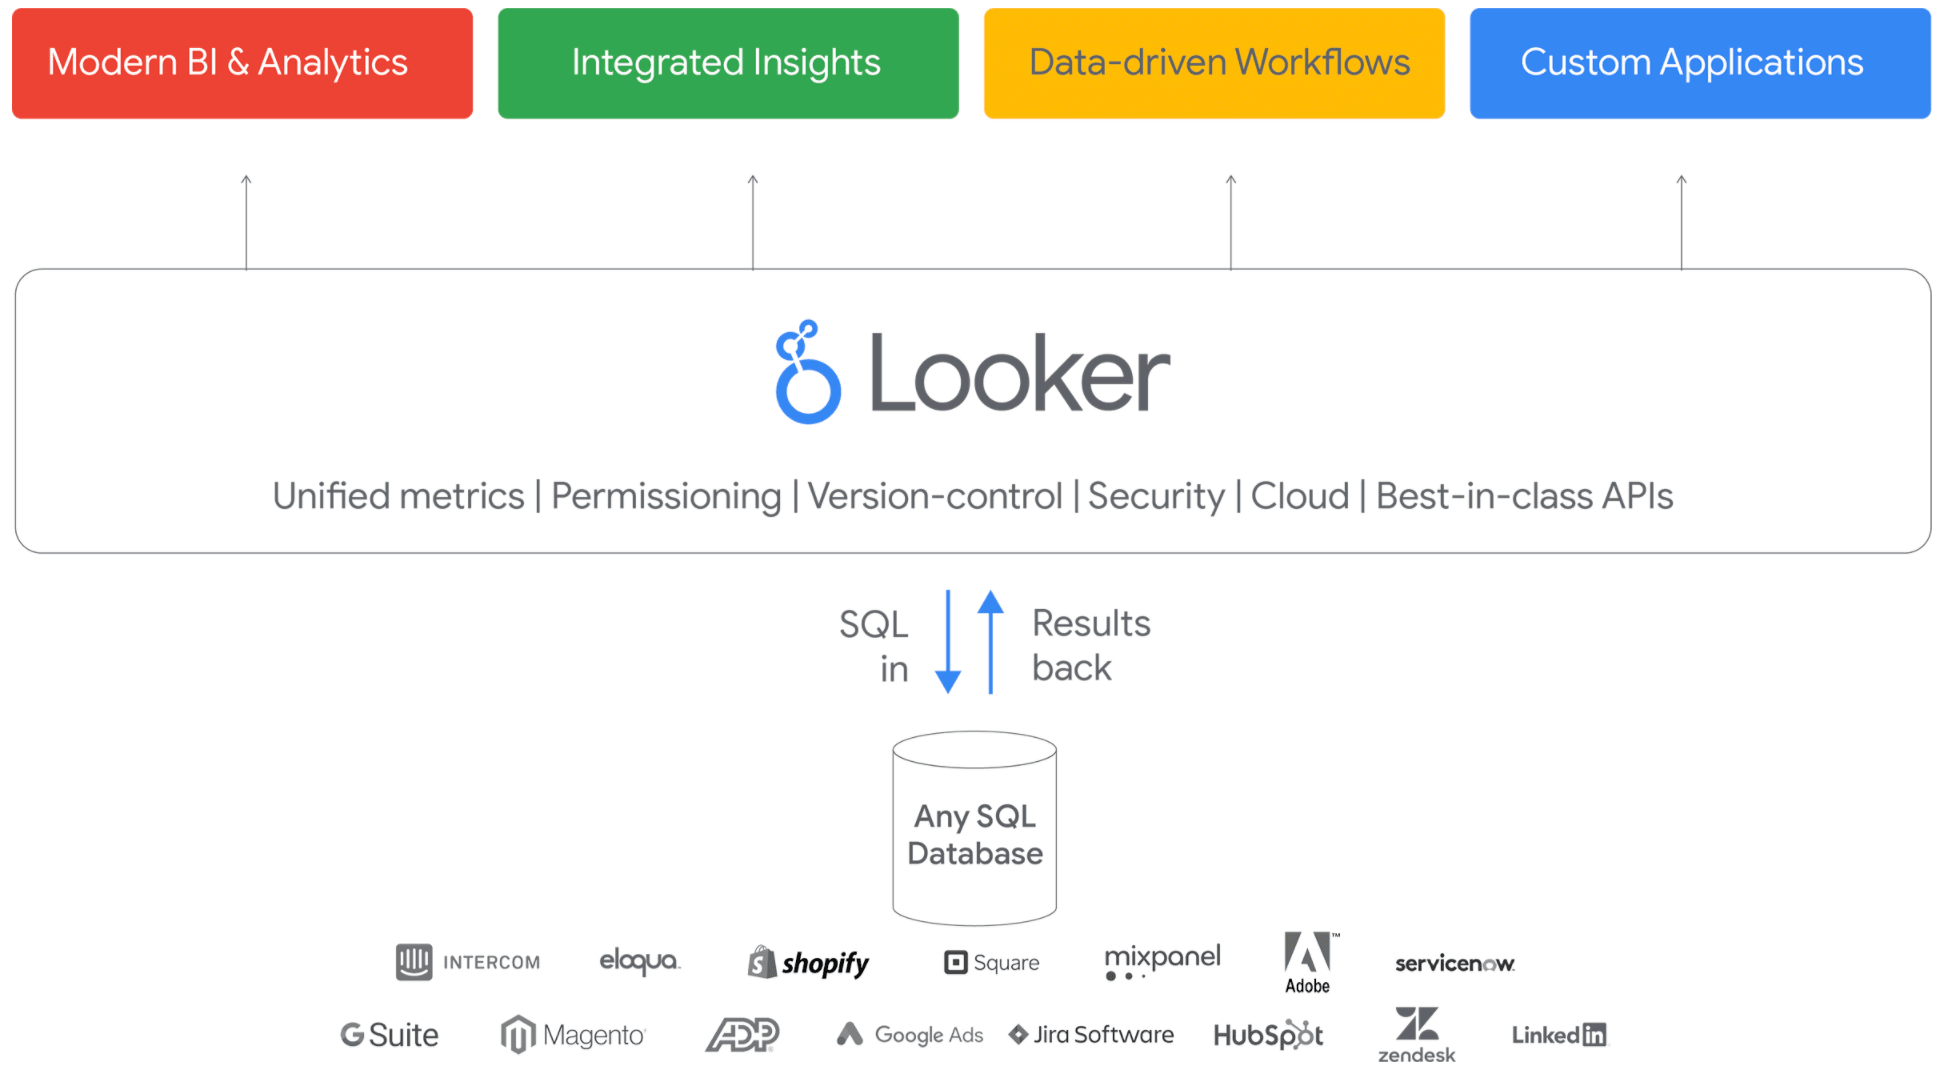 Looker Architecture